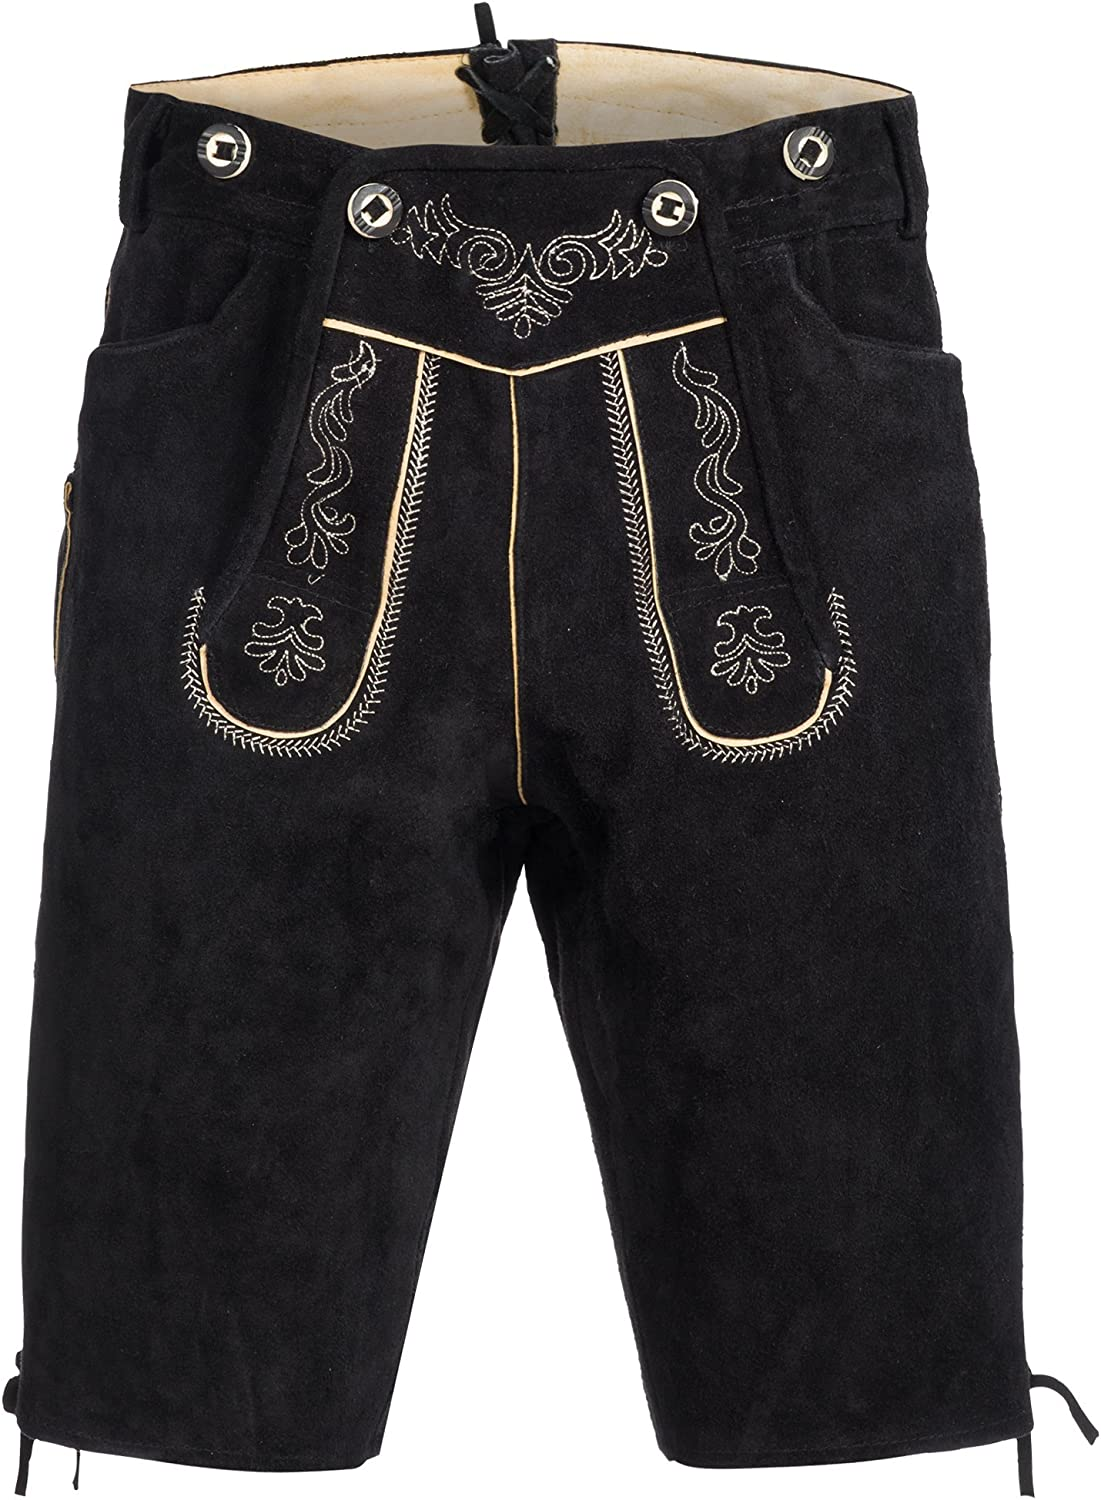 Gaudileathers Men's German Trachten Lederhosen Trousers Shorts